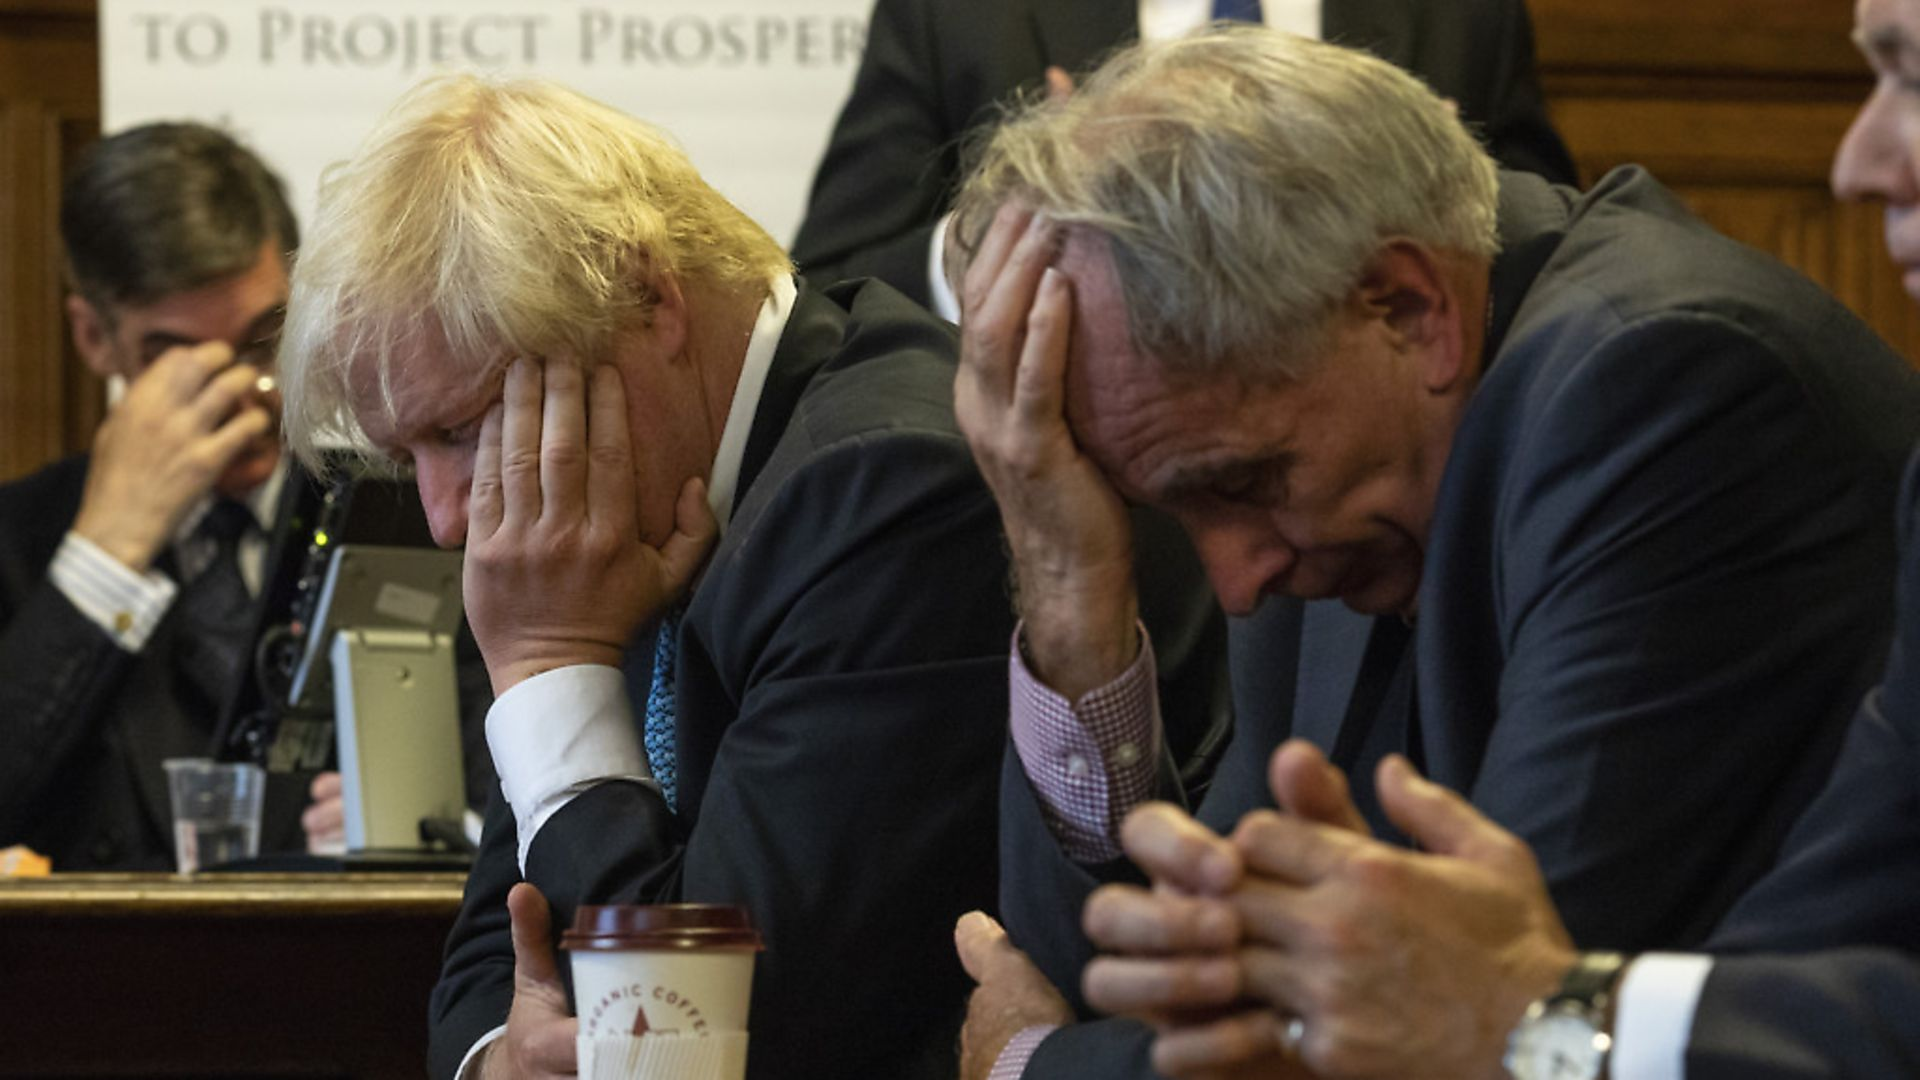 'Come on lads ... THINK!' Jacob Rees-Mogg, Boris Johnson and Peter Bone struggle to make sense of Brexit Photo: Getty - Credit: Getty Images